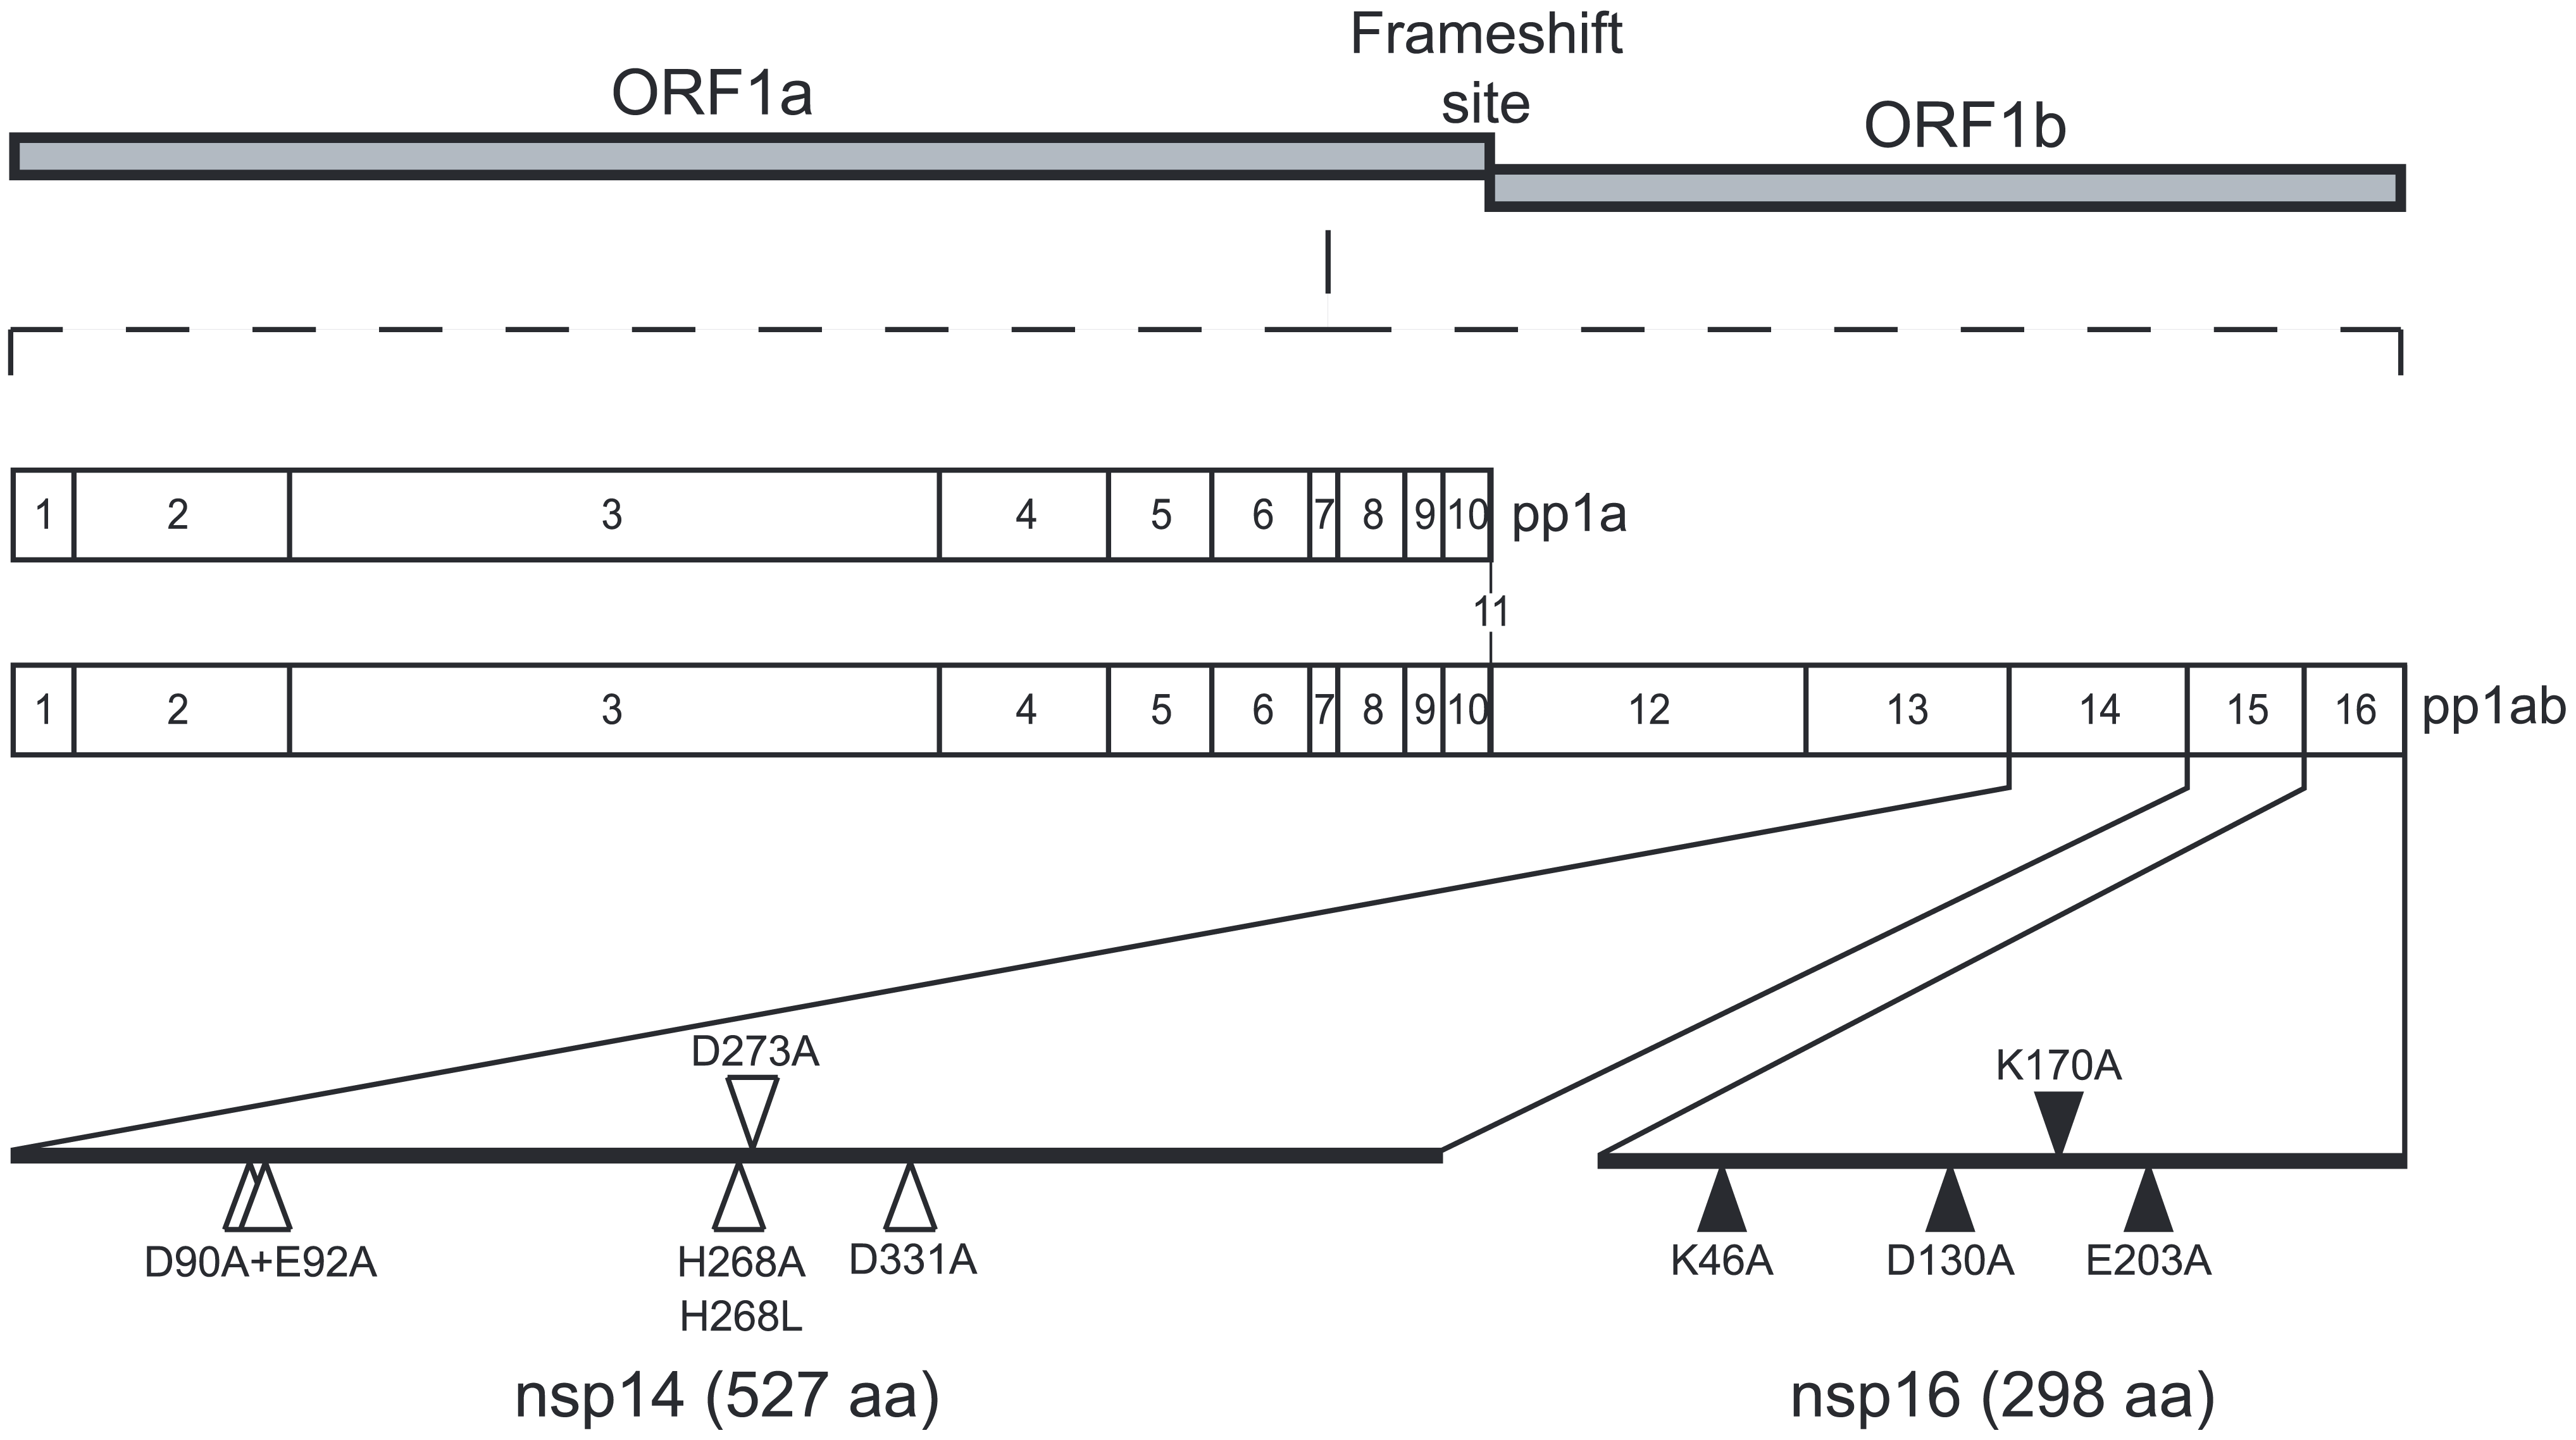 Genomic organization of CoV pp1a/pp1ab and location of the nsp14 and nsp16 mutants.